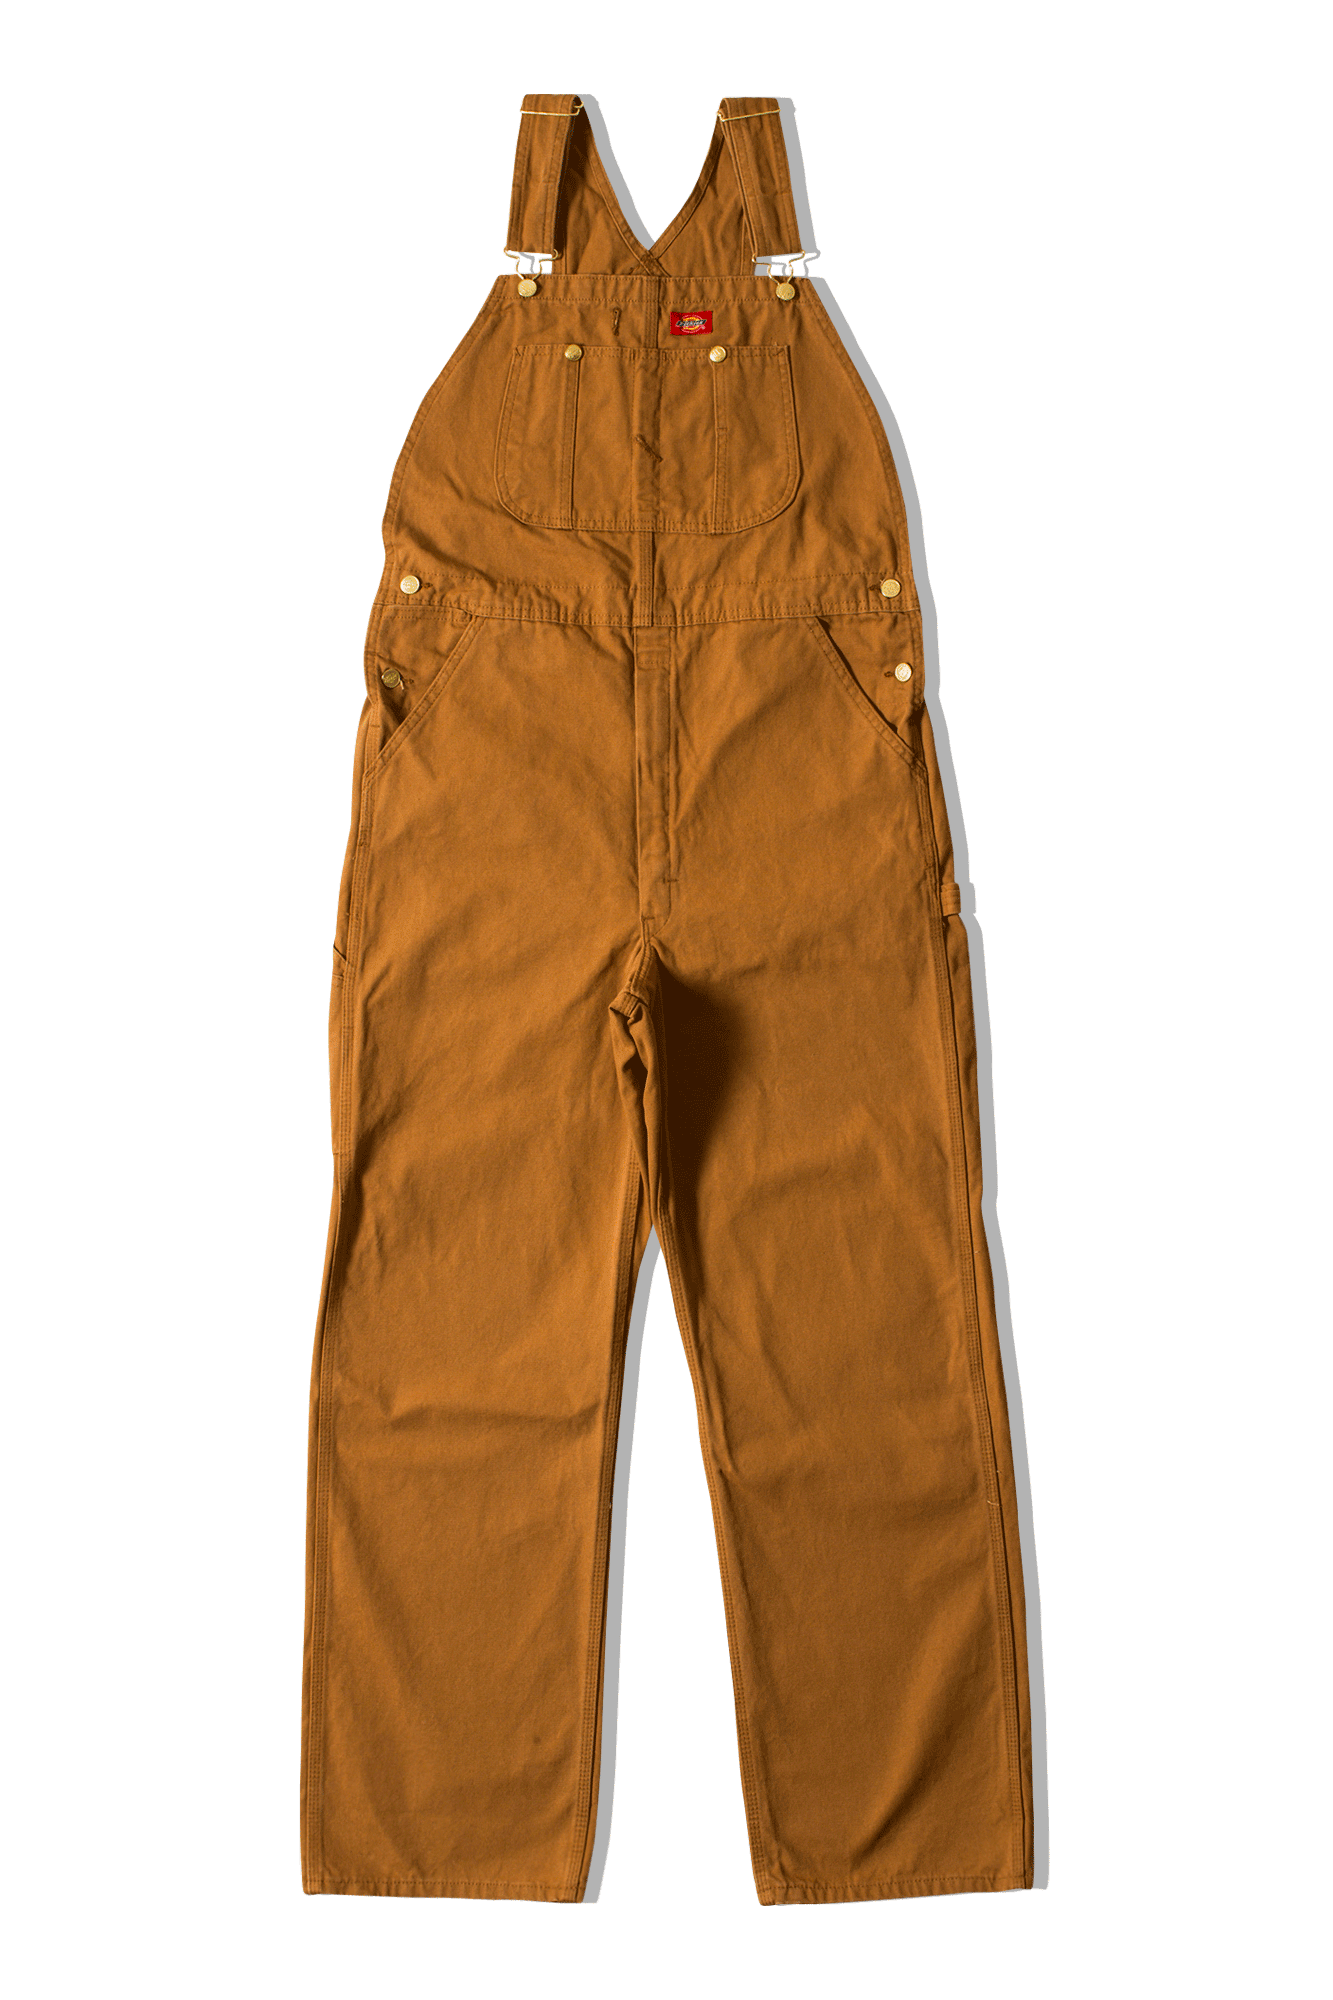 Dickies Salopette Bib Overall Marrone 681190067#000#RBD#27 - One Block Down